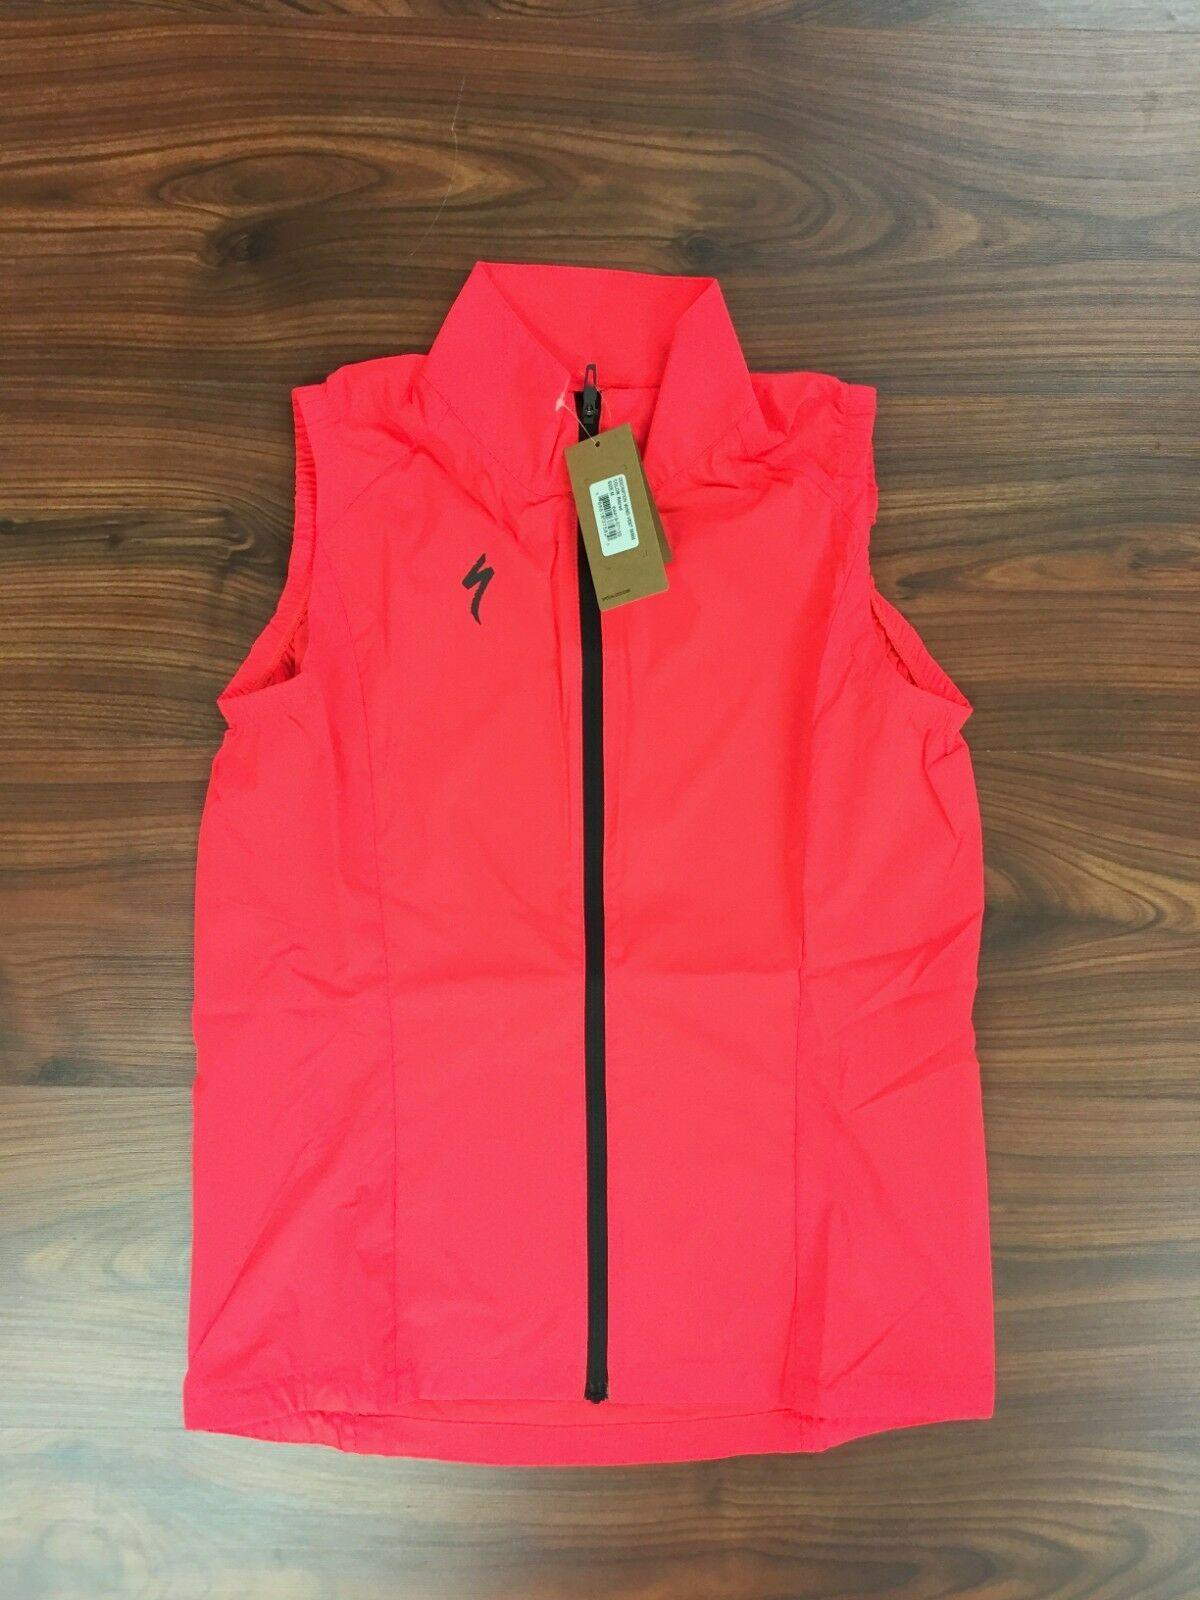 Specialized Women's Wind Vest Size Medium New